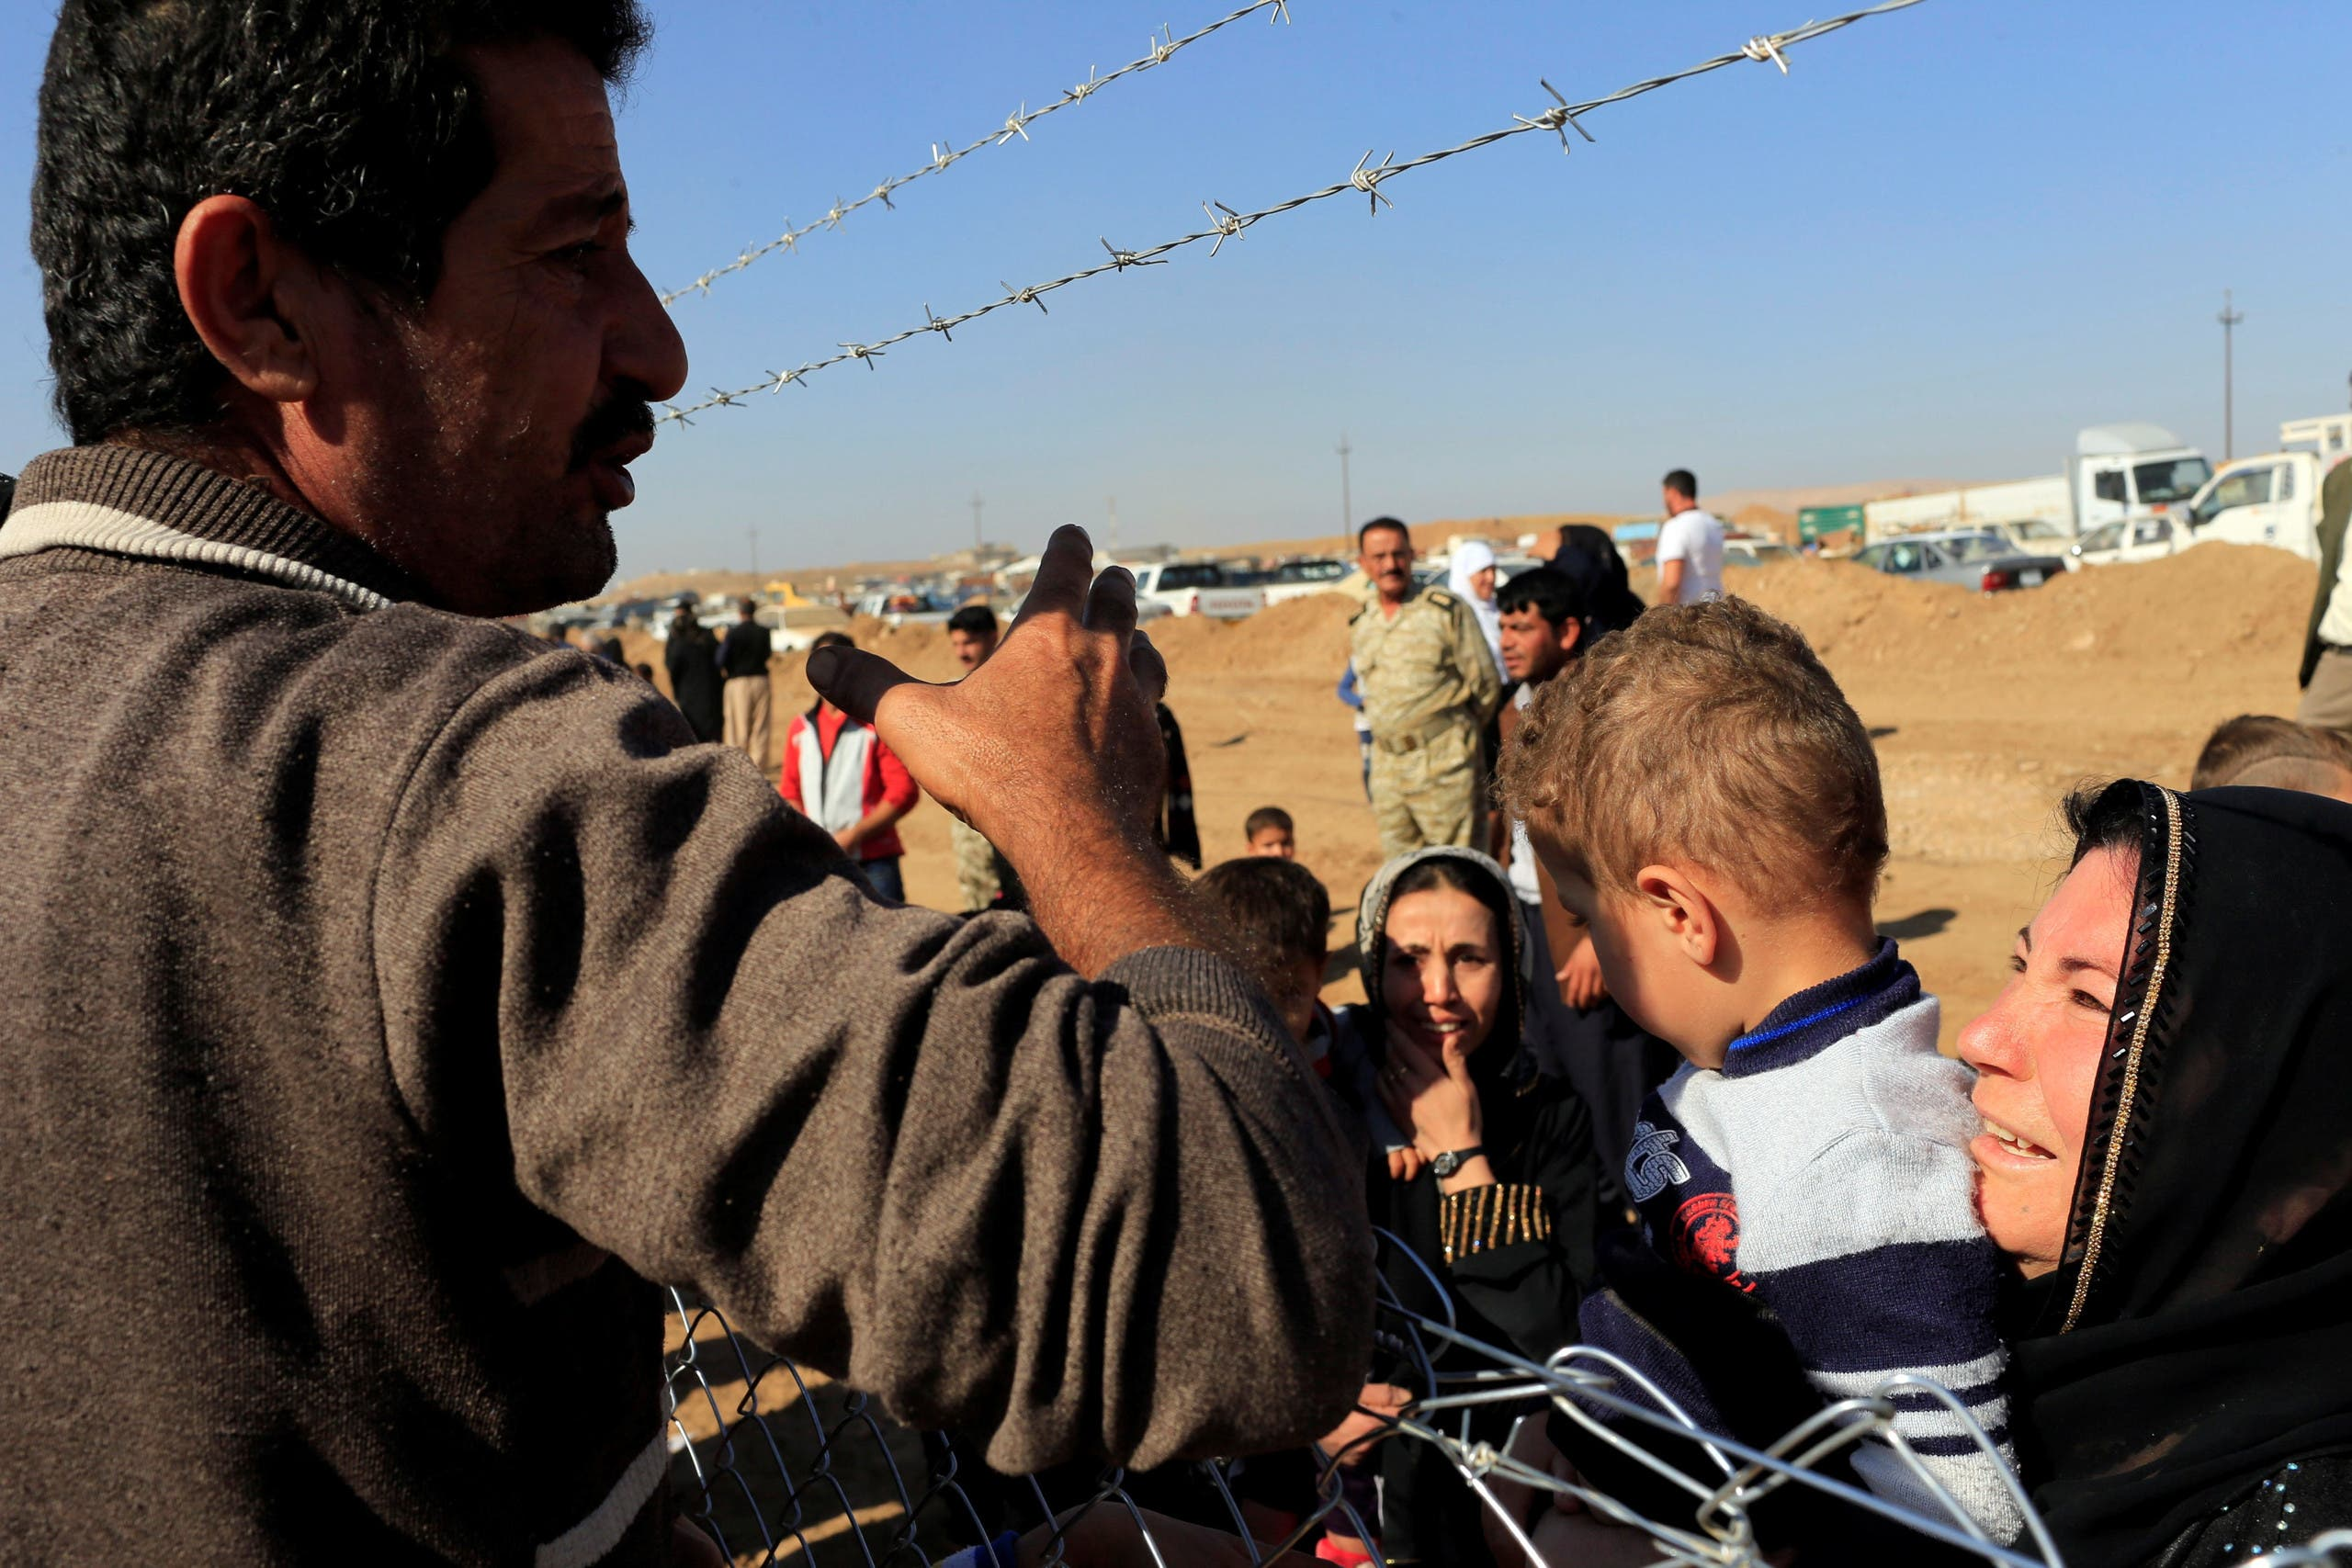 More Eastern Mosul districts freed by Iraqi forces